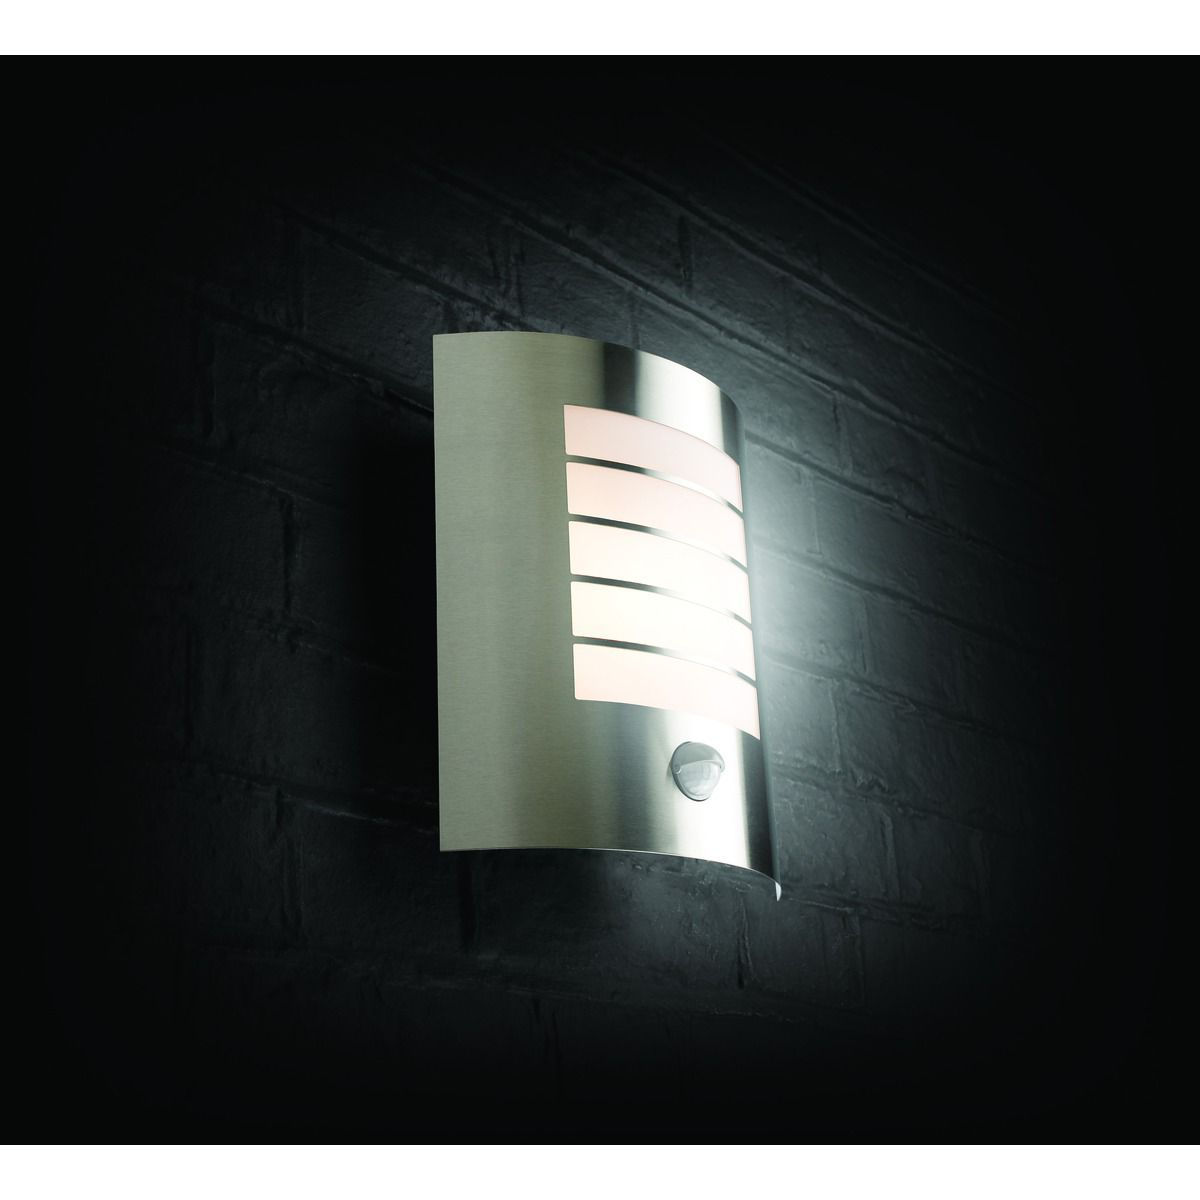 Outside Wall Lights Wickes : February 2017 - Wall lights, LED bathroom & bedroom lighting at Homebase